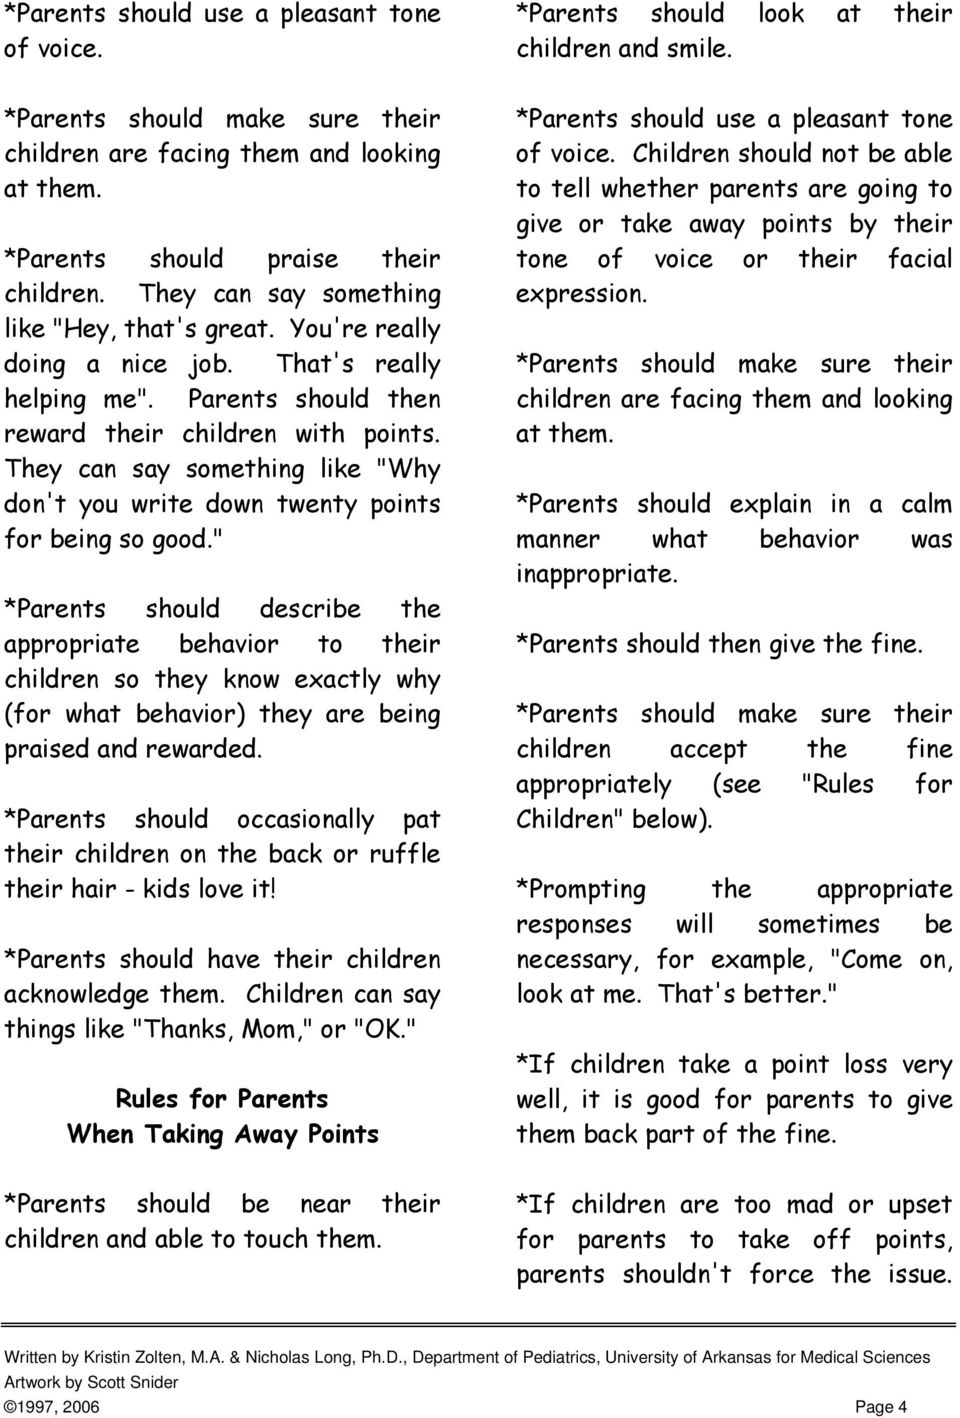 """ *Parents should describe the appropriate behavior to their children so they know exactly why (for what behavior) they are being praised and rewarded."